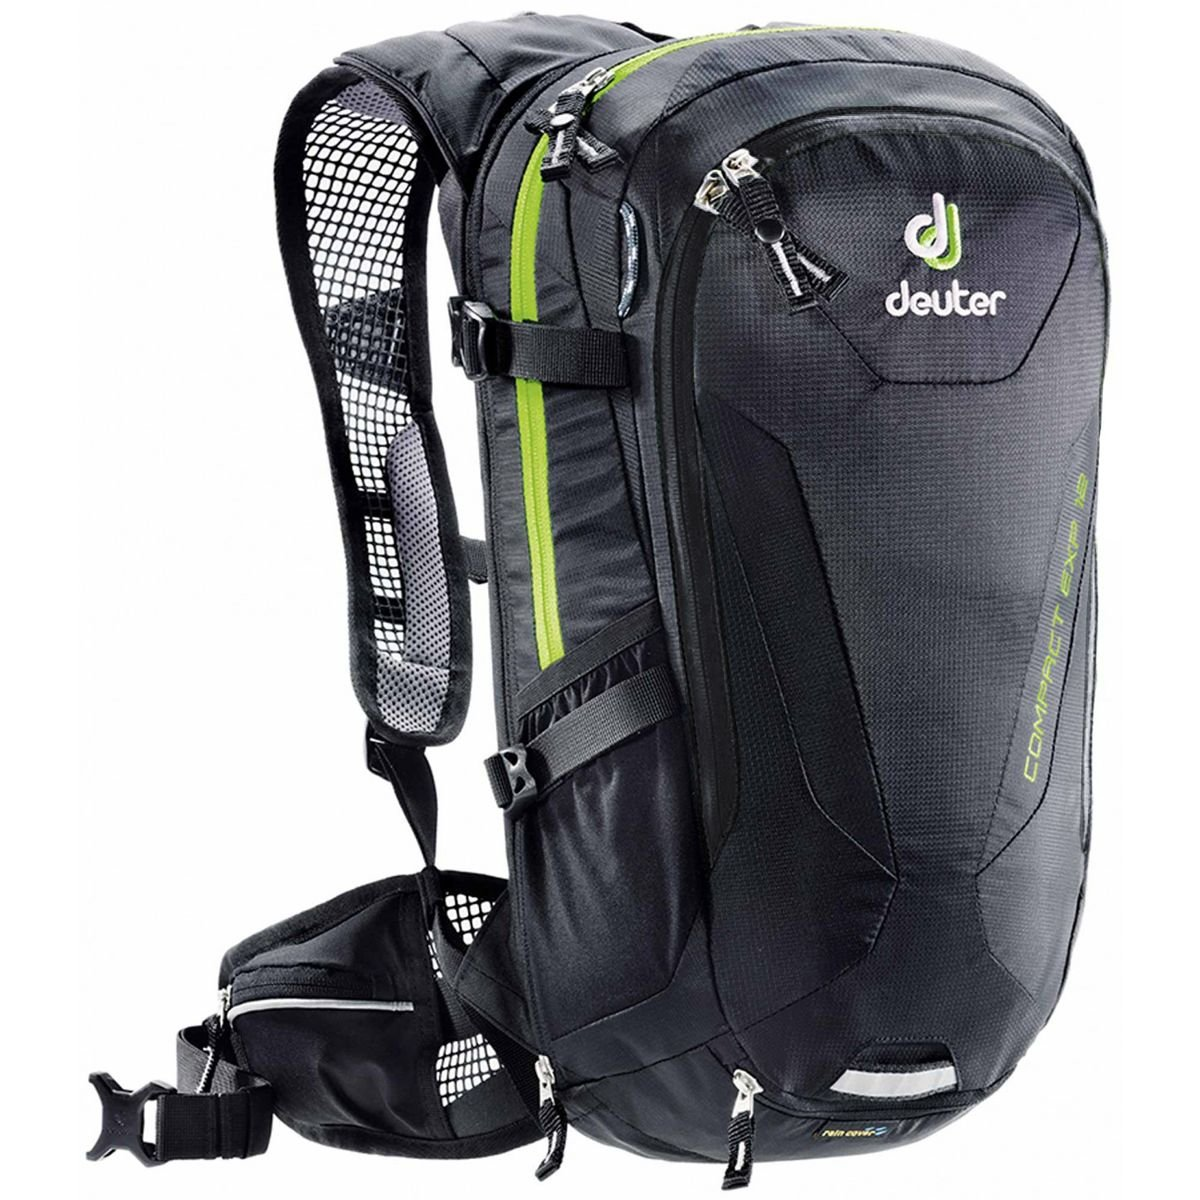 Рюкзак Deuter Compact EXP 12 black (7000) 3200215 7000